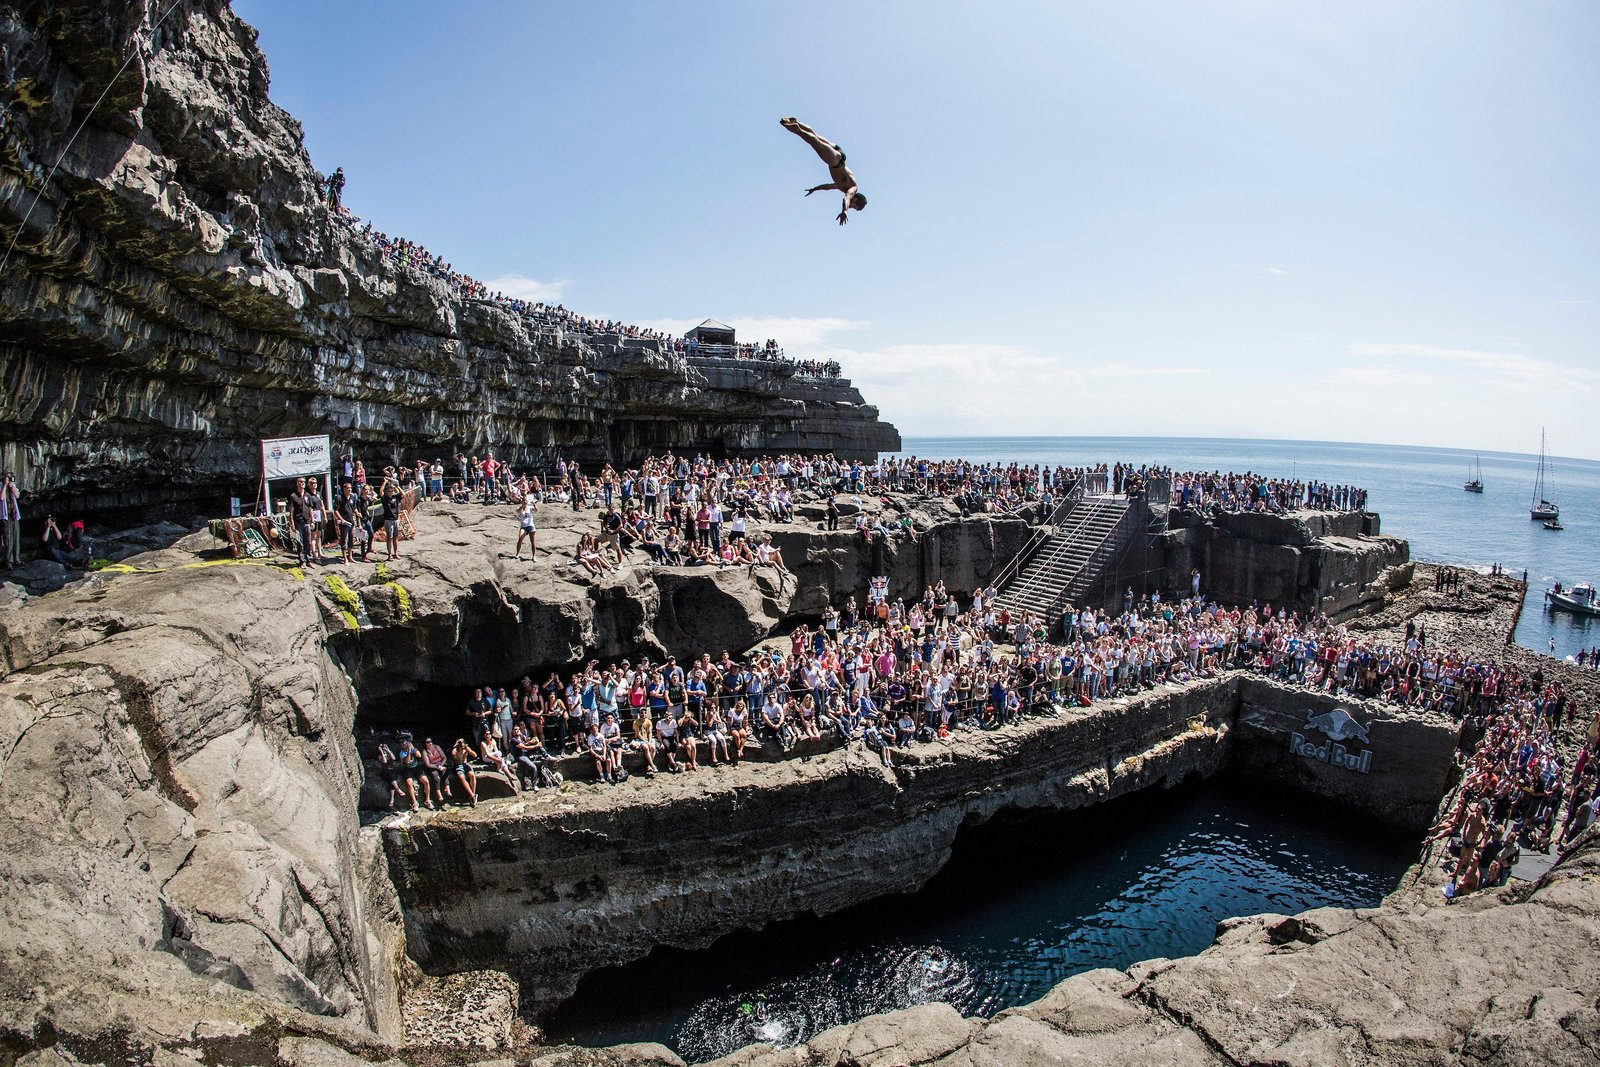 Steven Lobue of the USA dives from the 28 metre platform during the  third stop of the Red Bull Cliff Diving World Series, Inis Mor, Aran Islands, Ireland on June 29th 2014. // Romina Amato/Red Bull Cliff Diving // P-20140629-00123 // Usage for editorial use only // Please go to www.redbullcontentpool.com for further information. //